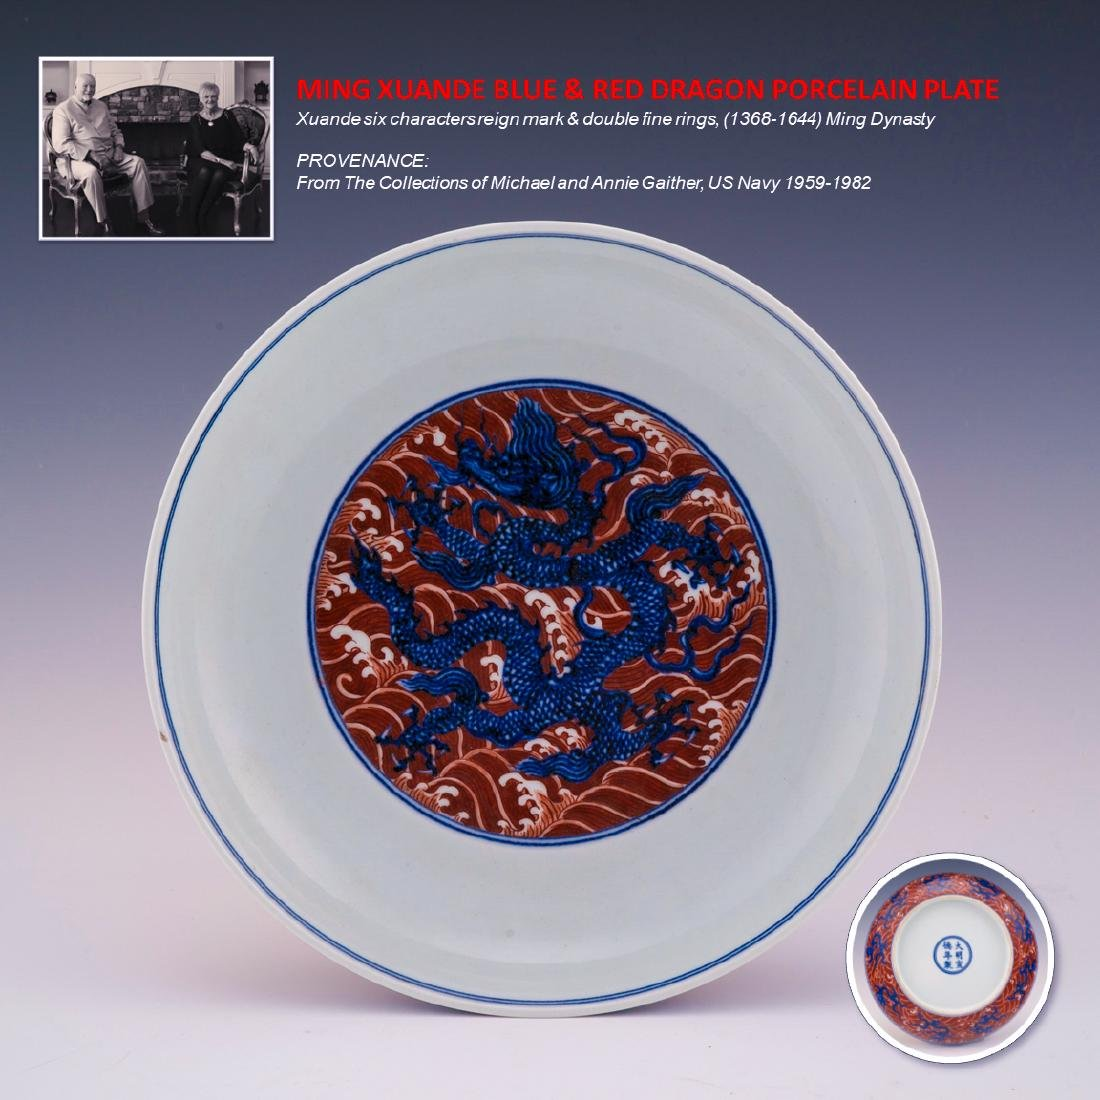 MING XUANDE BLUE & RED DRAGON PORCELAIN PLATE